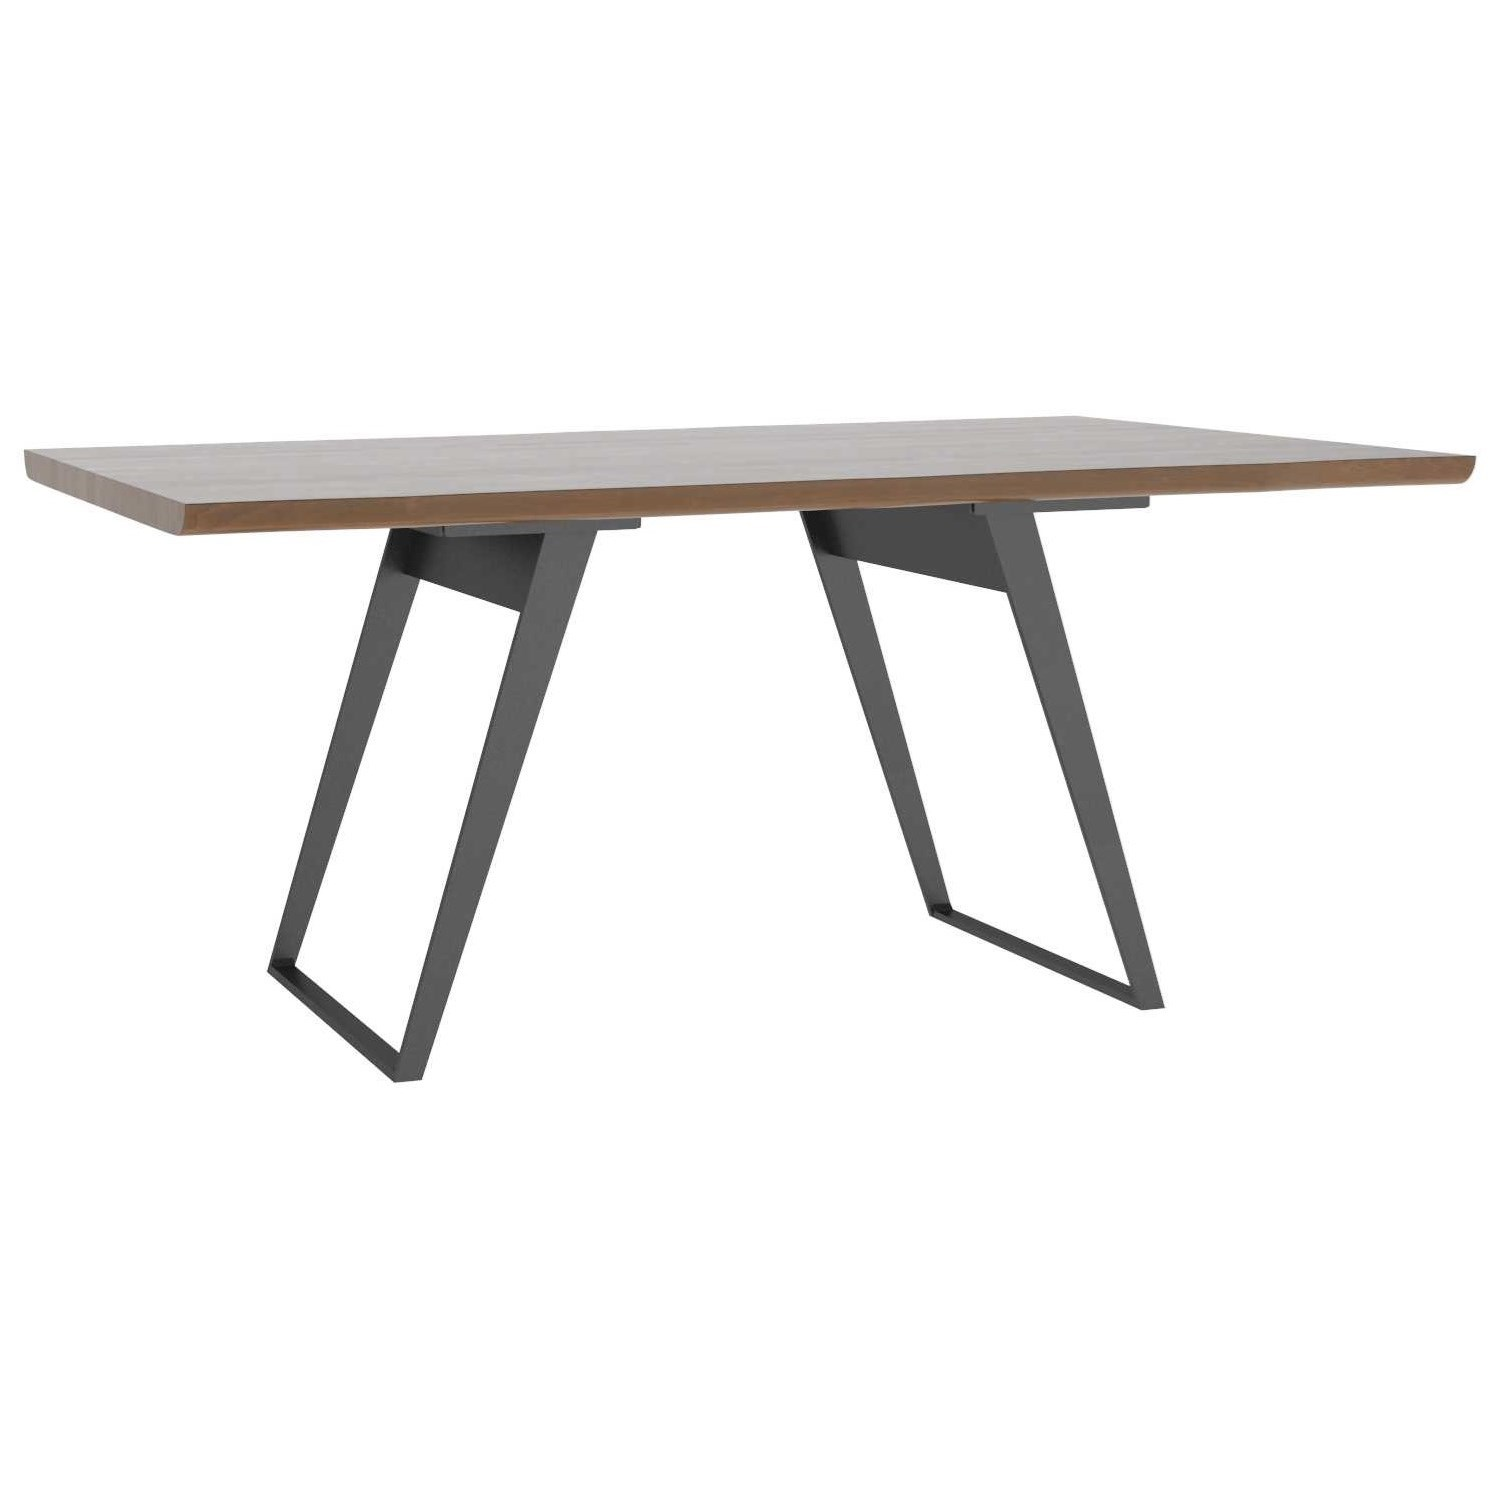 East Side Customizable Live Edge Table by Canadel at Dinette Depot